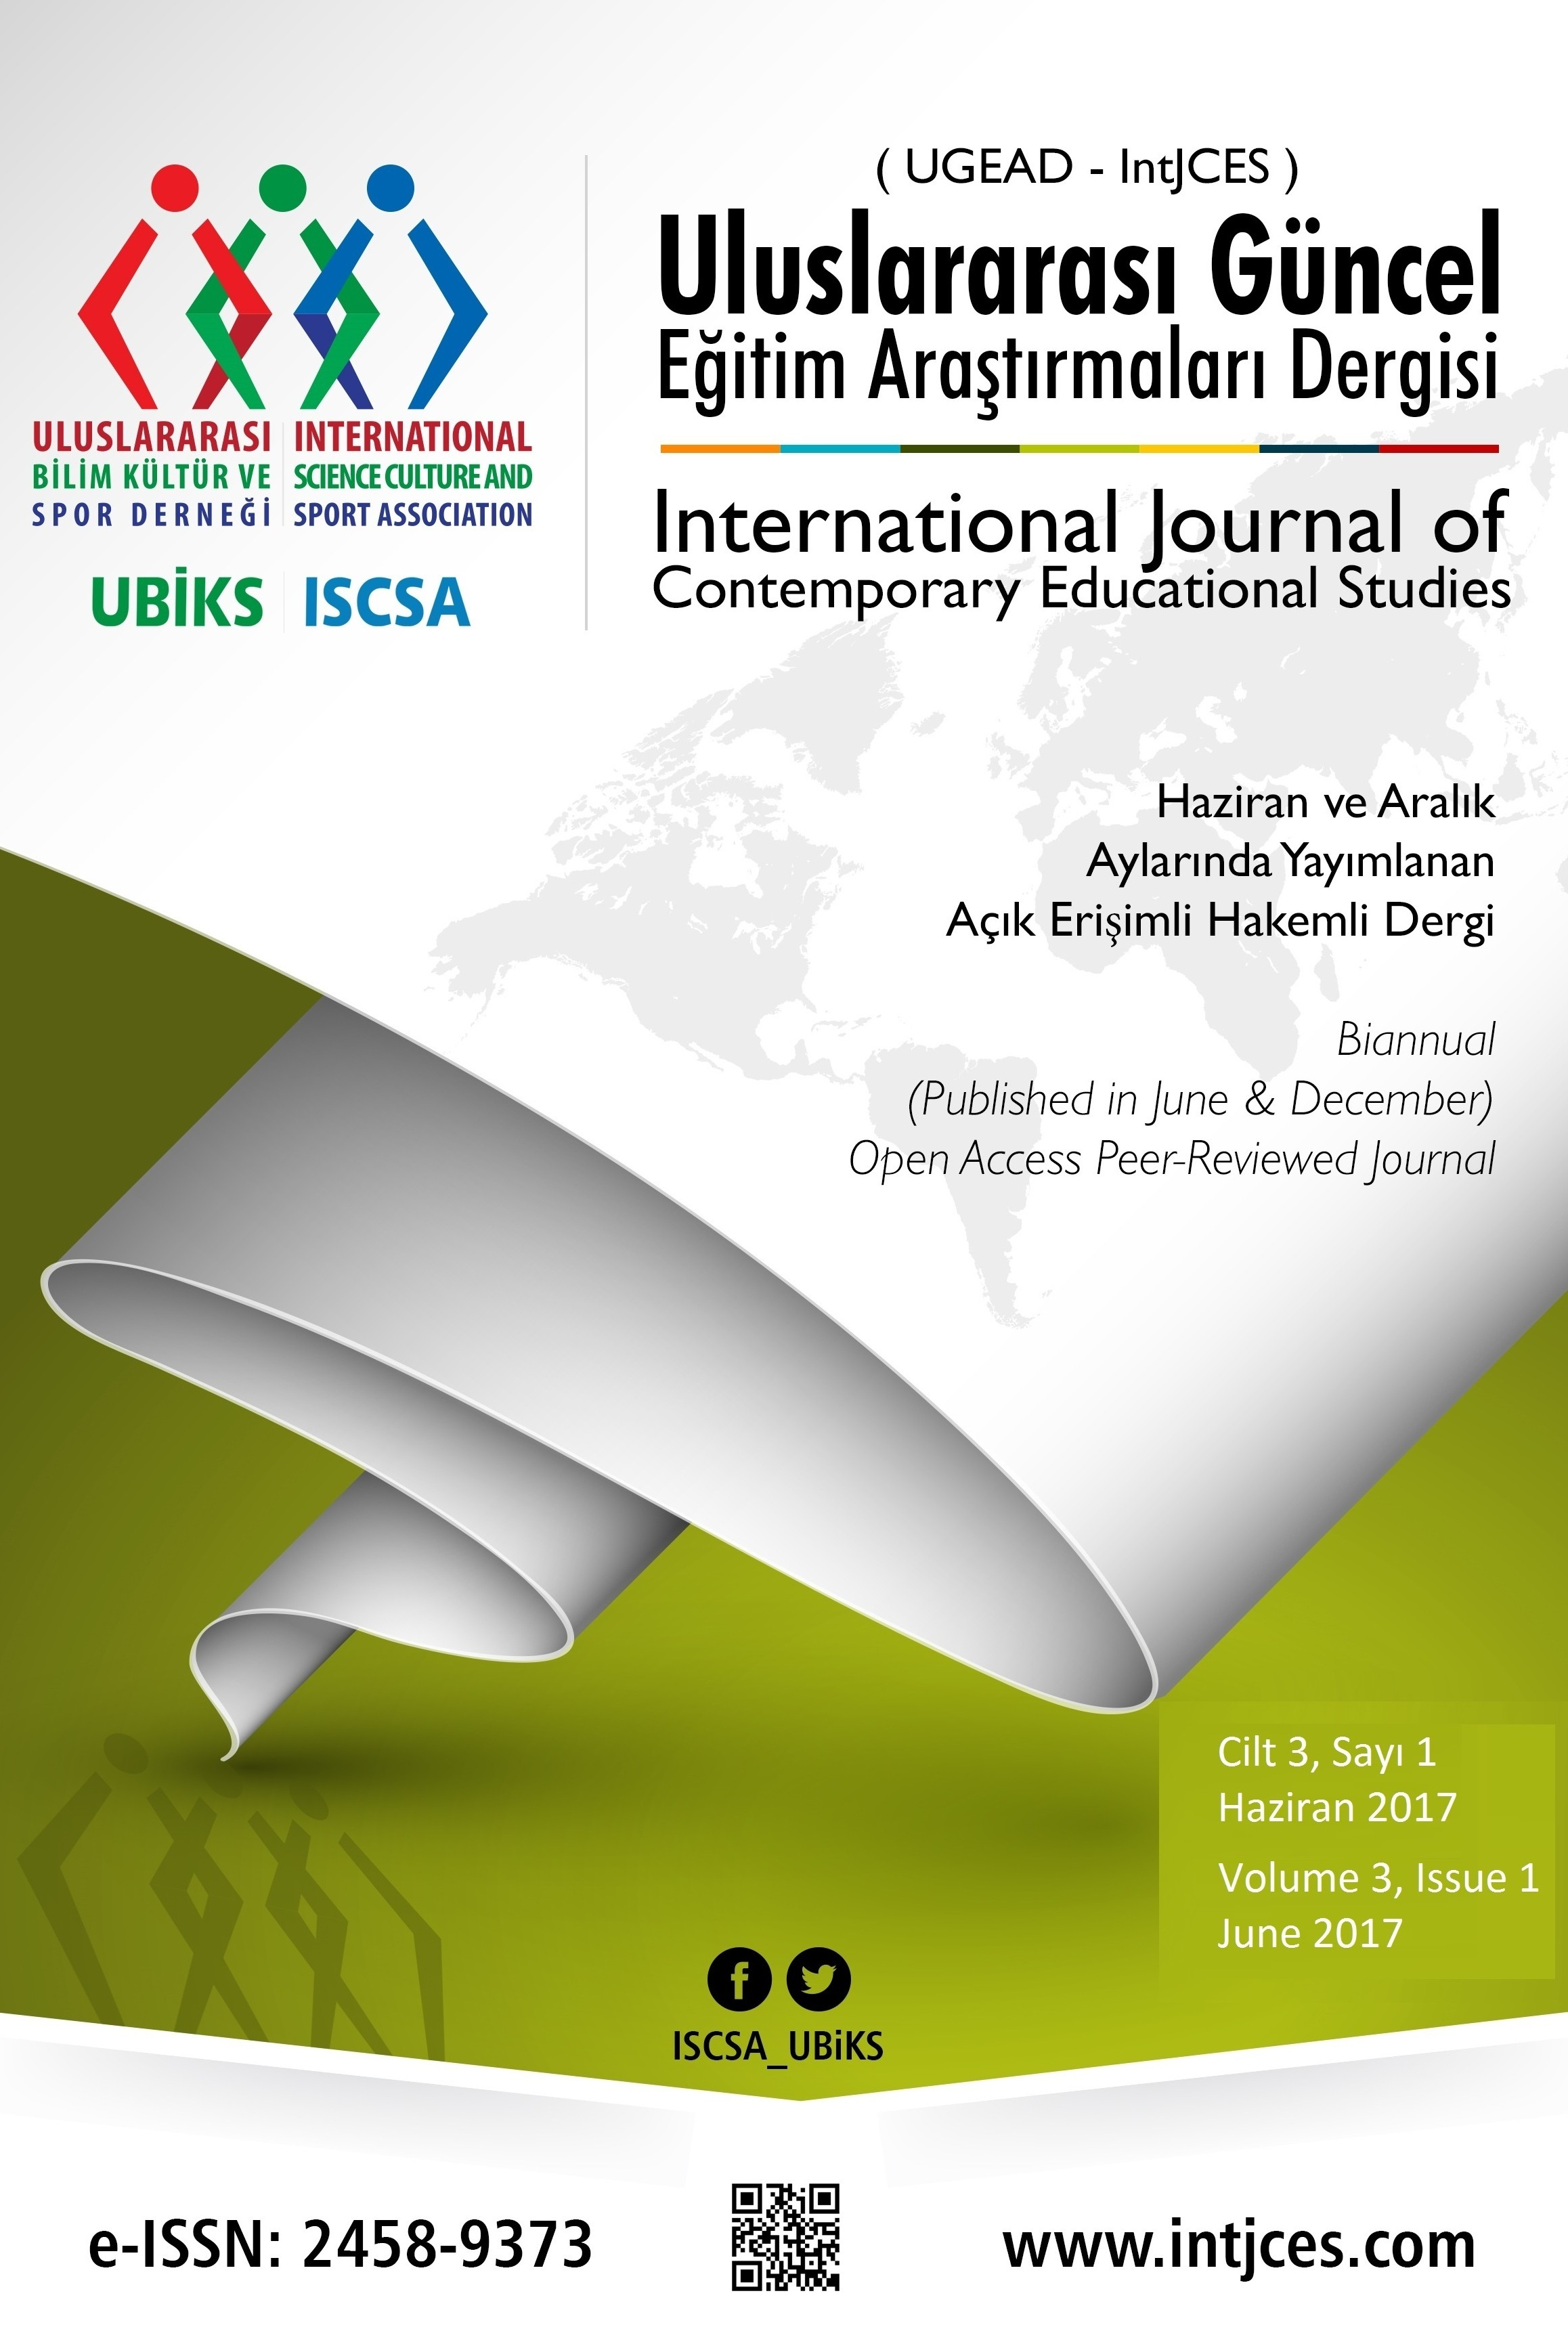 International Journal of Contemporary Educational Studies (IntJCES)